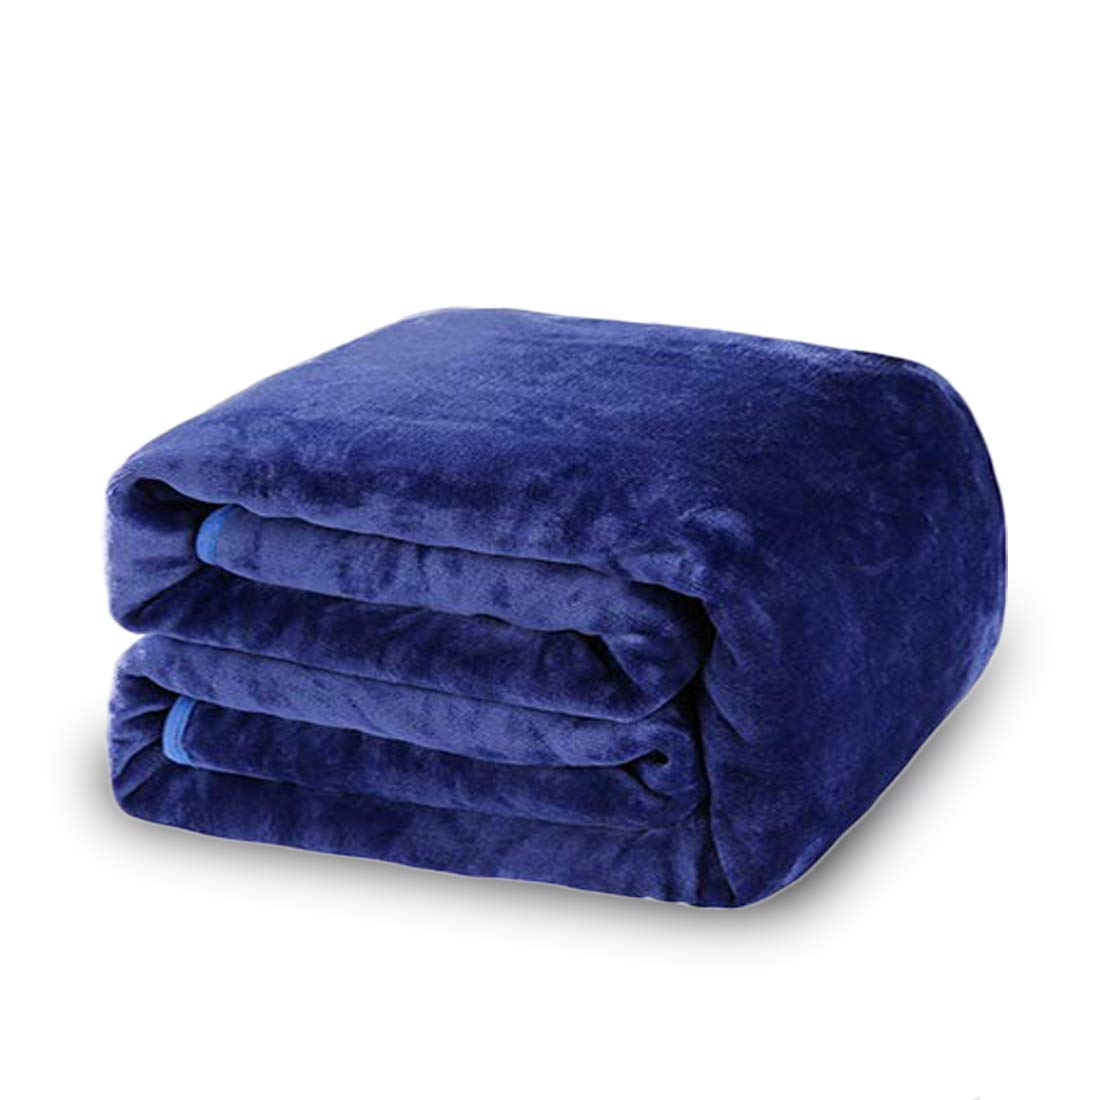 (Travel (130cm -by-150cm), Dark Blue) - Balichun Luxury 330 GSM Fleece Blanket Super Soft Warm Fuzzy Lightweight Bed or Couch Blanket Twin/Queen/King Size(Dark Blue, Travel) B01N4ENXH9 ロイヤルブルー Travel (50-Inch-by-61-Inch)